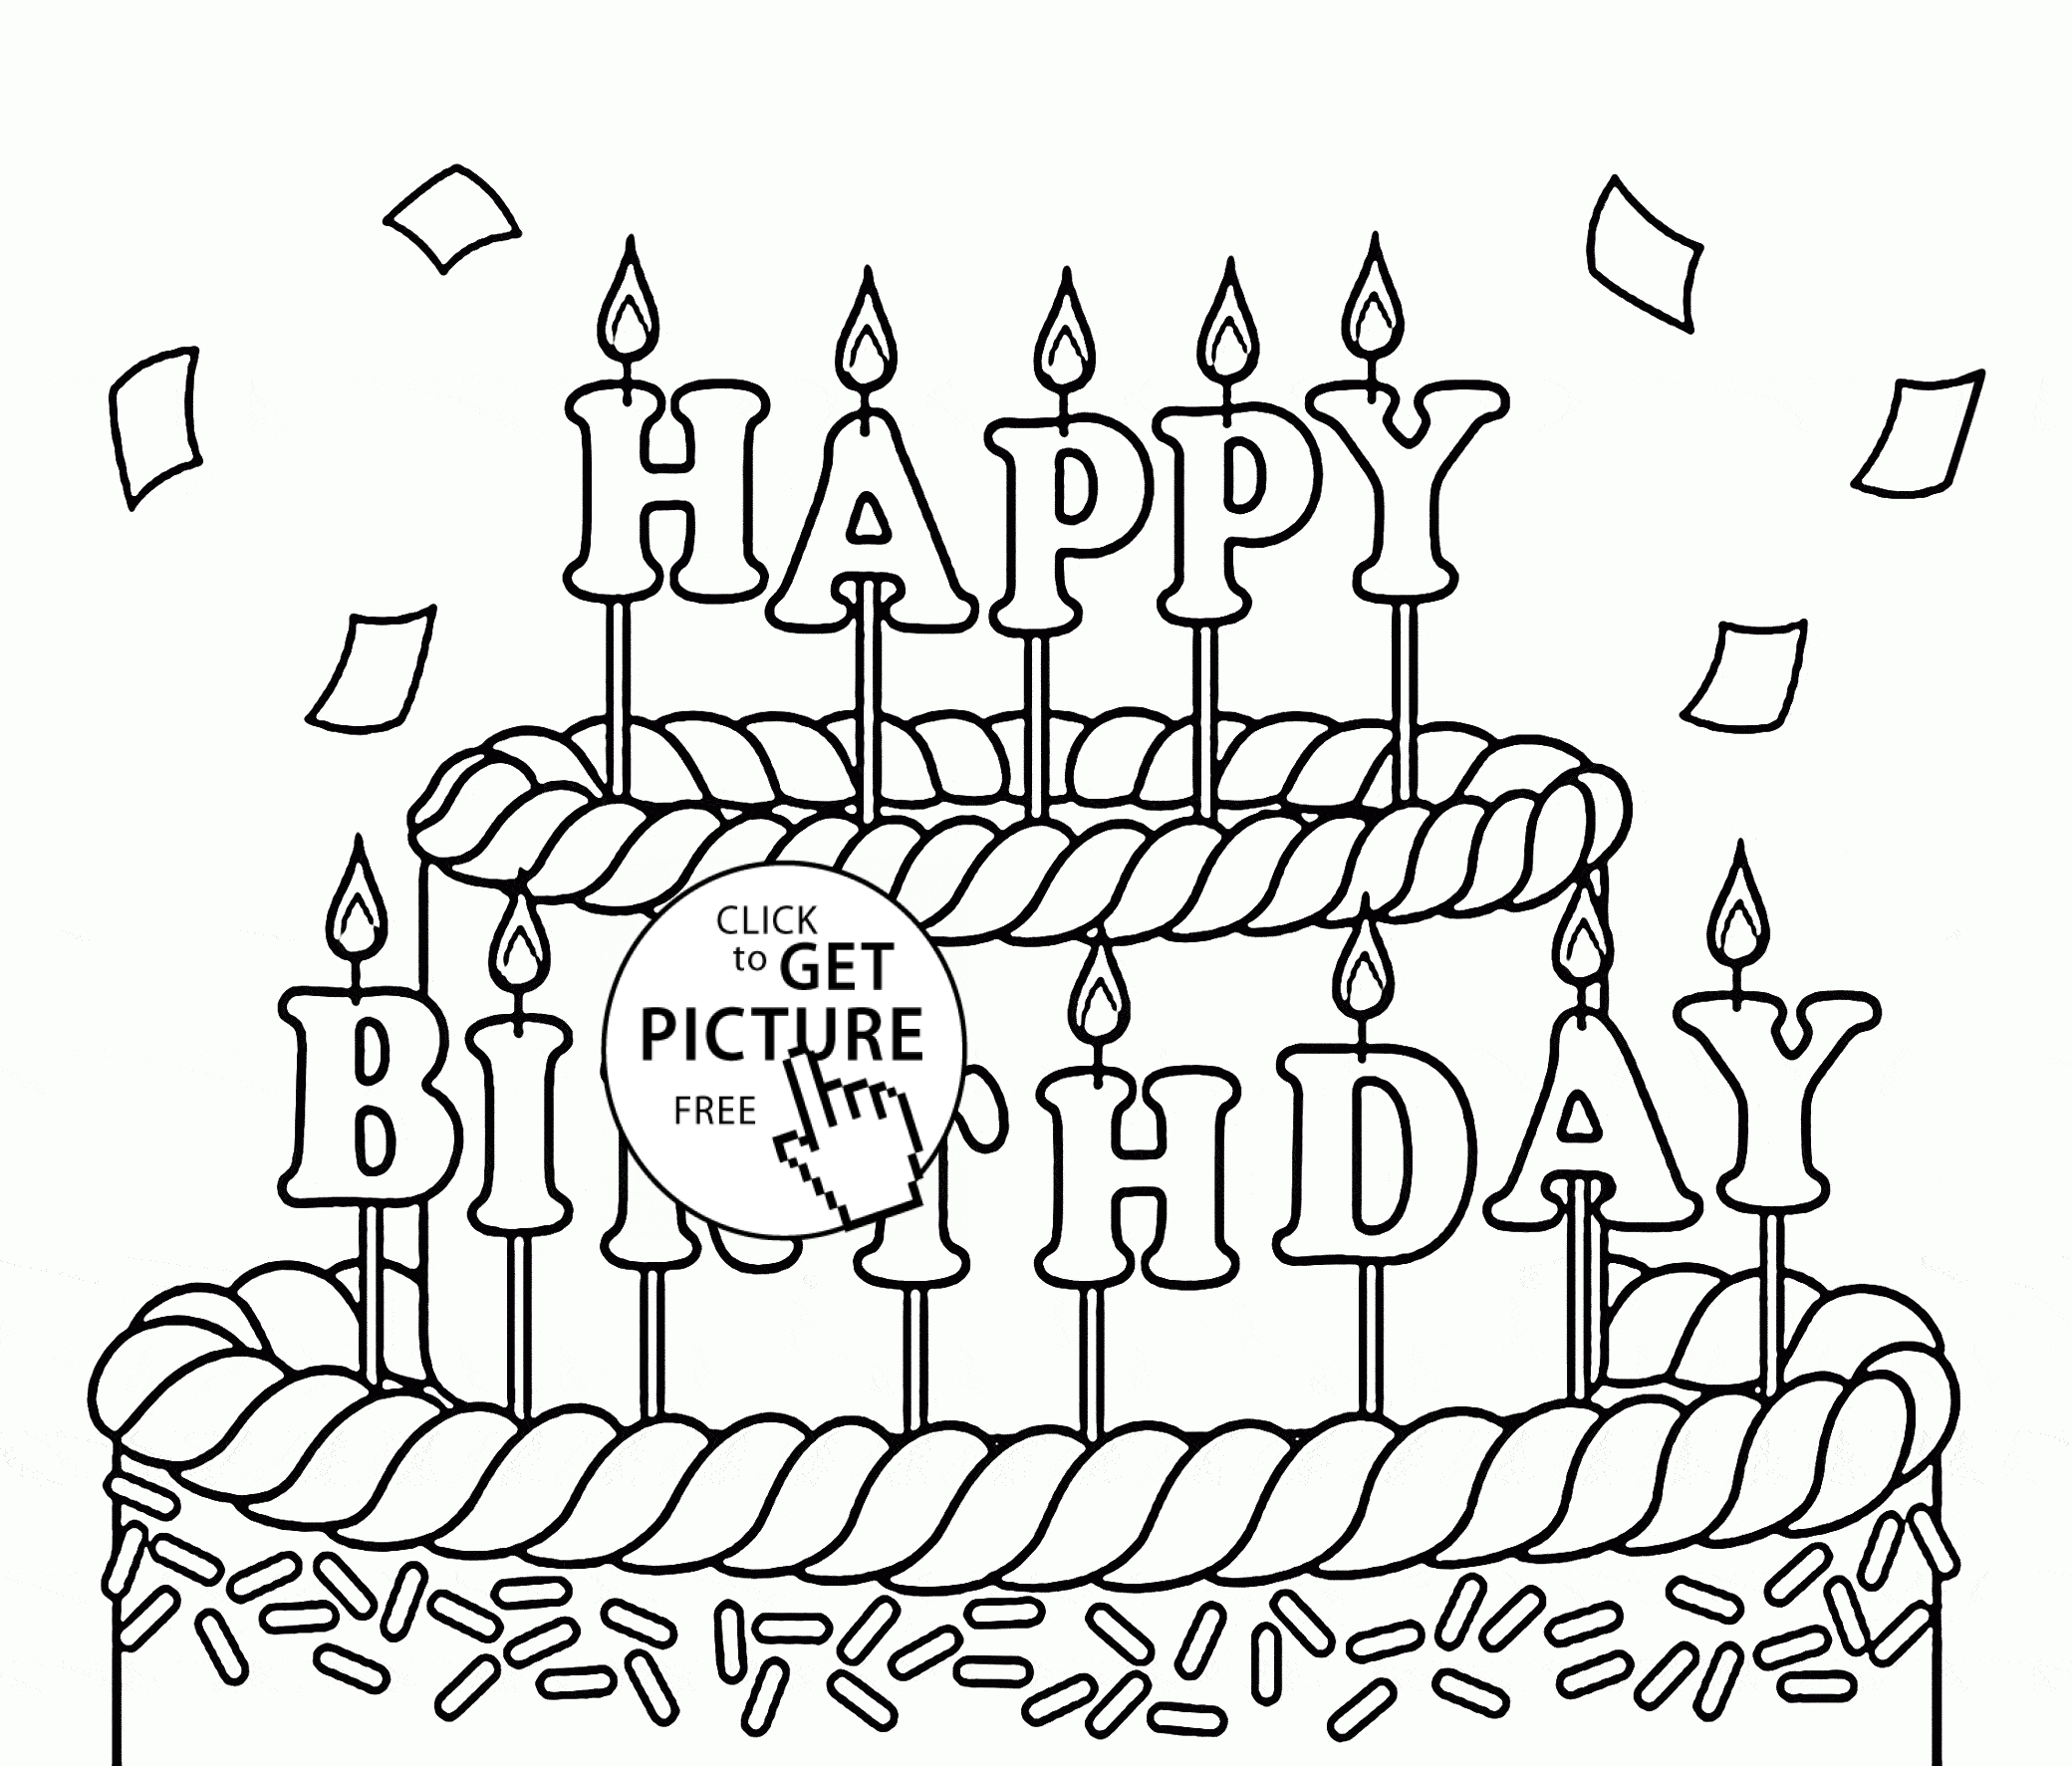 personalized happy birthday coloring pages ; personalized-happy-birthday-coloring-pages-16-e-personalized-happy-birthday-coloring-pages-thestout